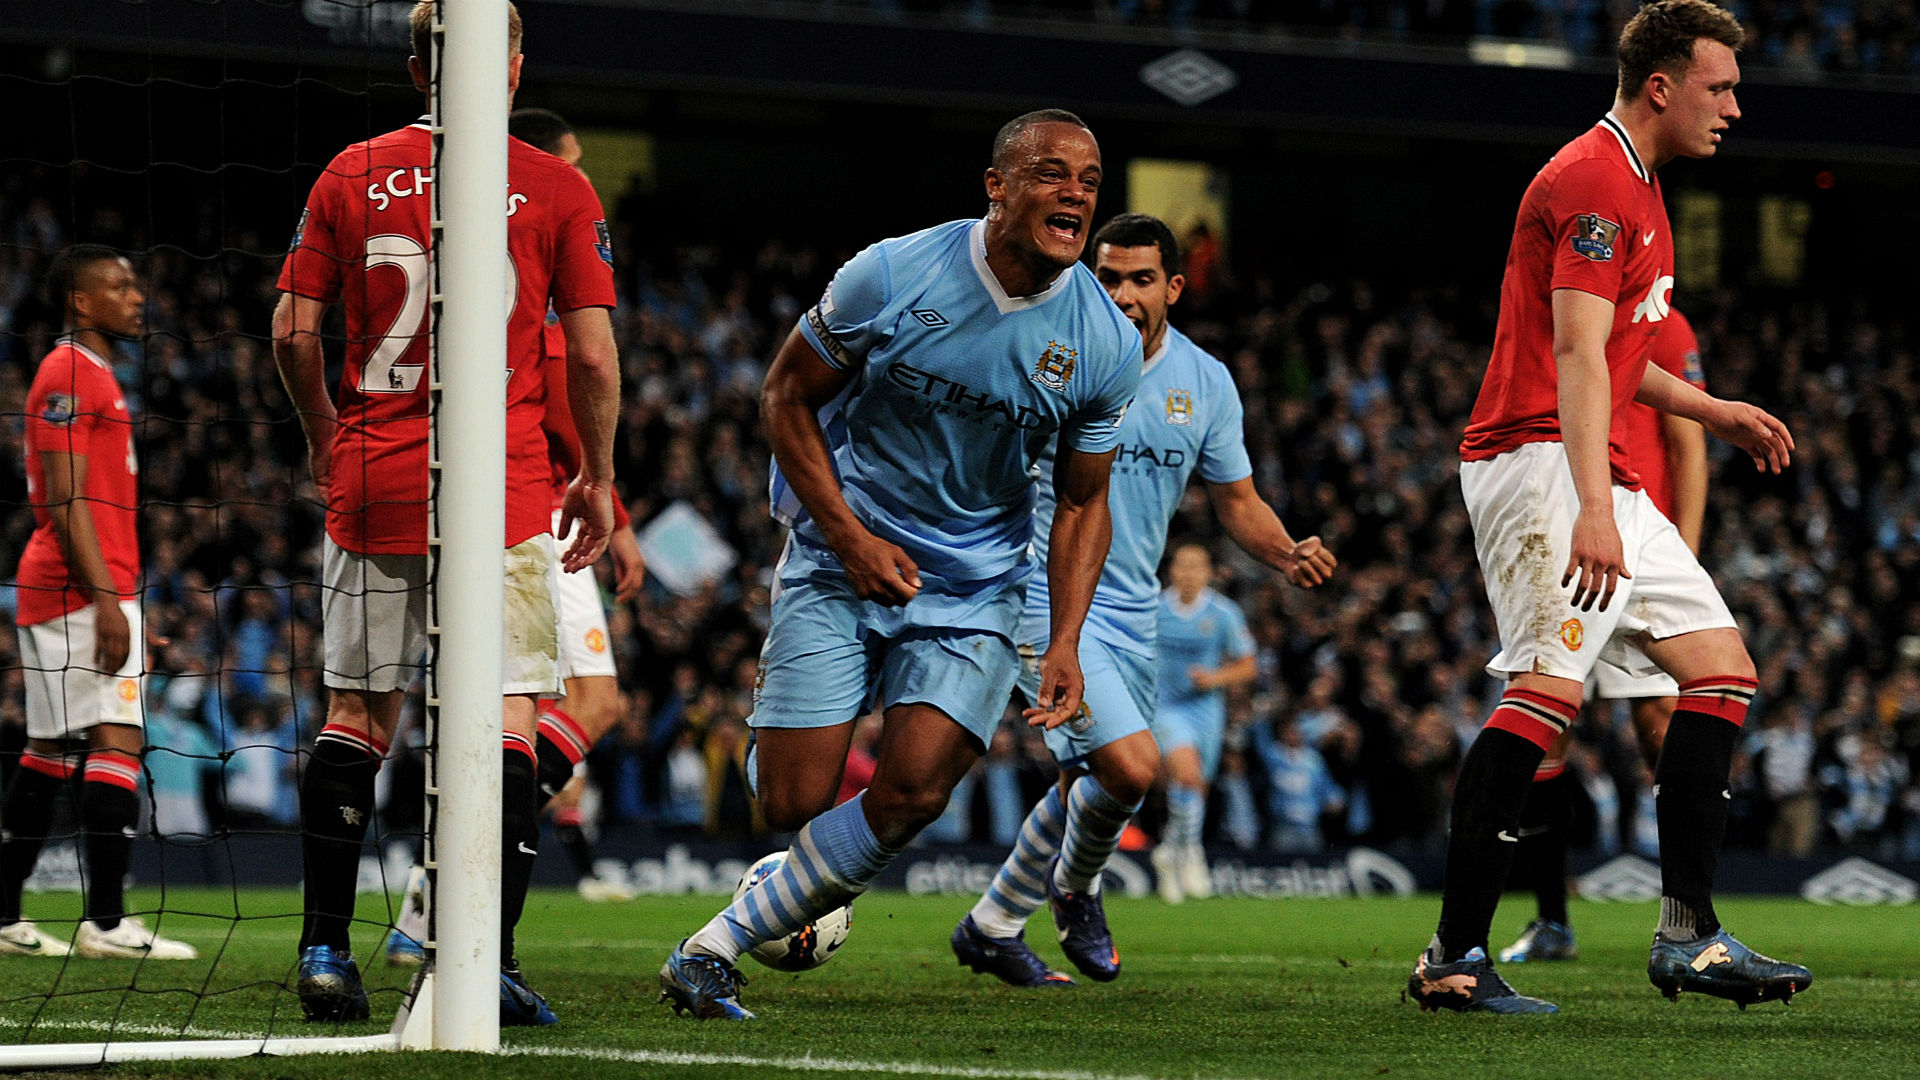 'I have lived the dream': Kompany's best moments at Manchester City